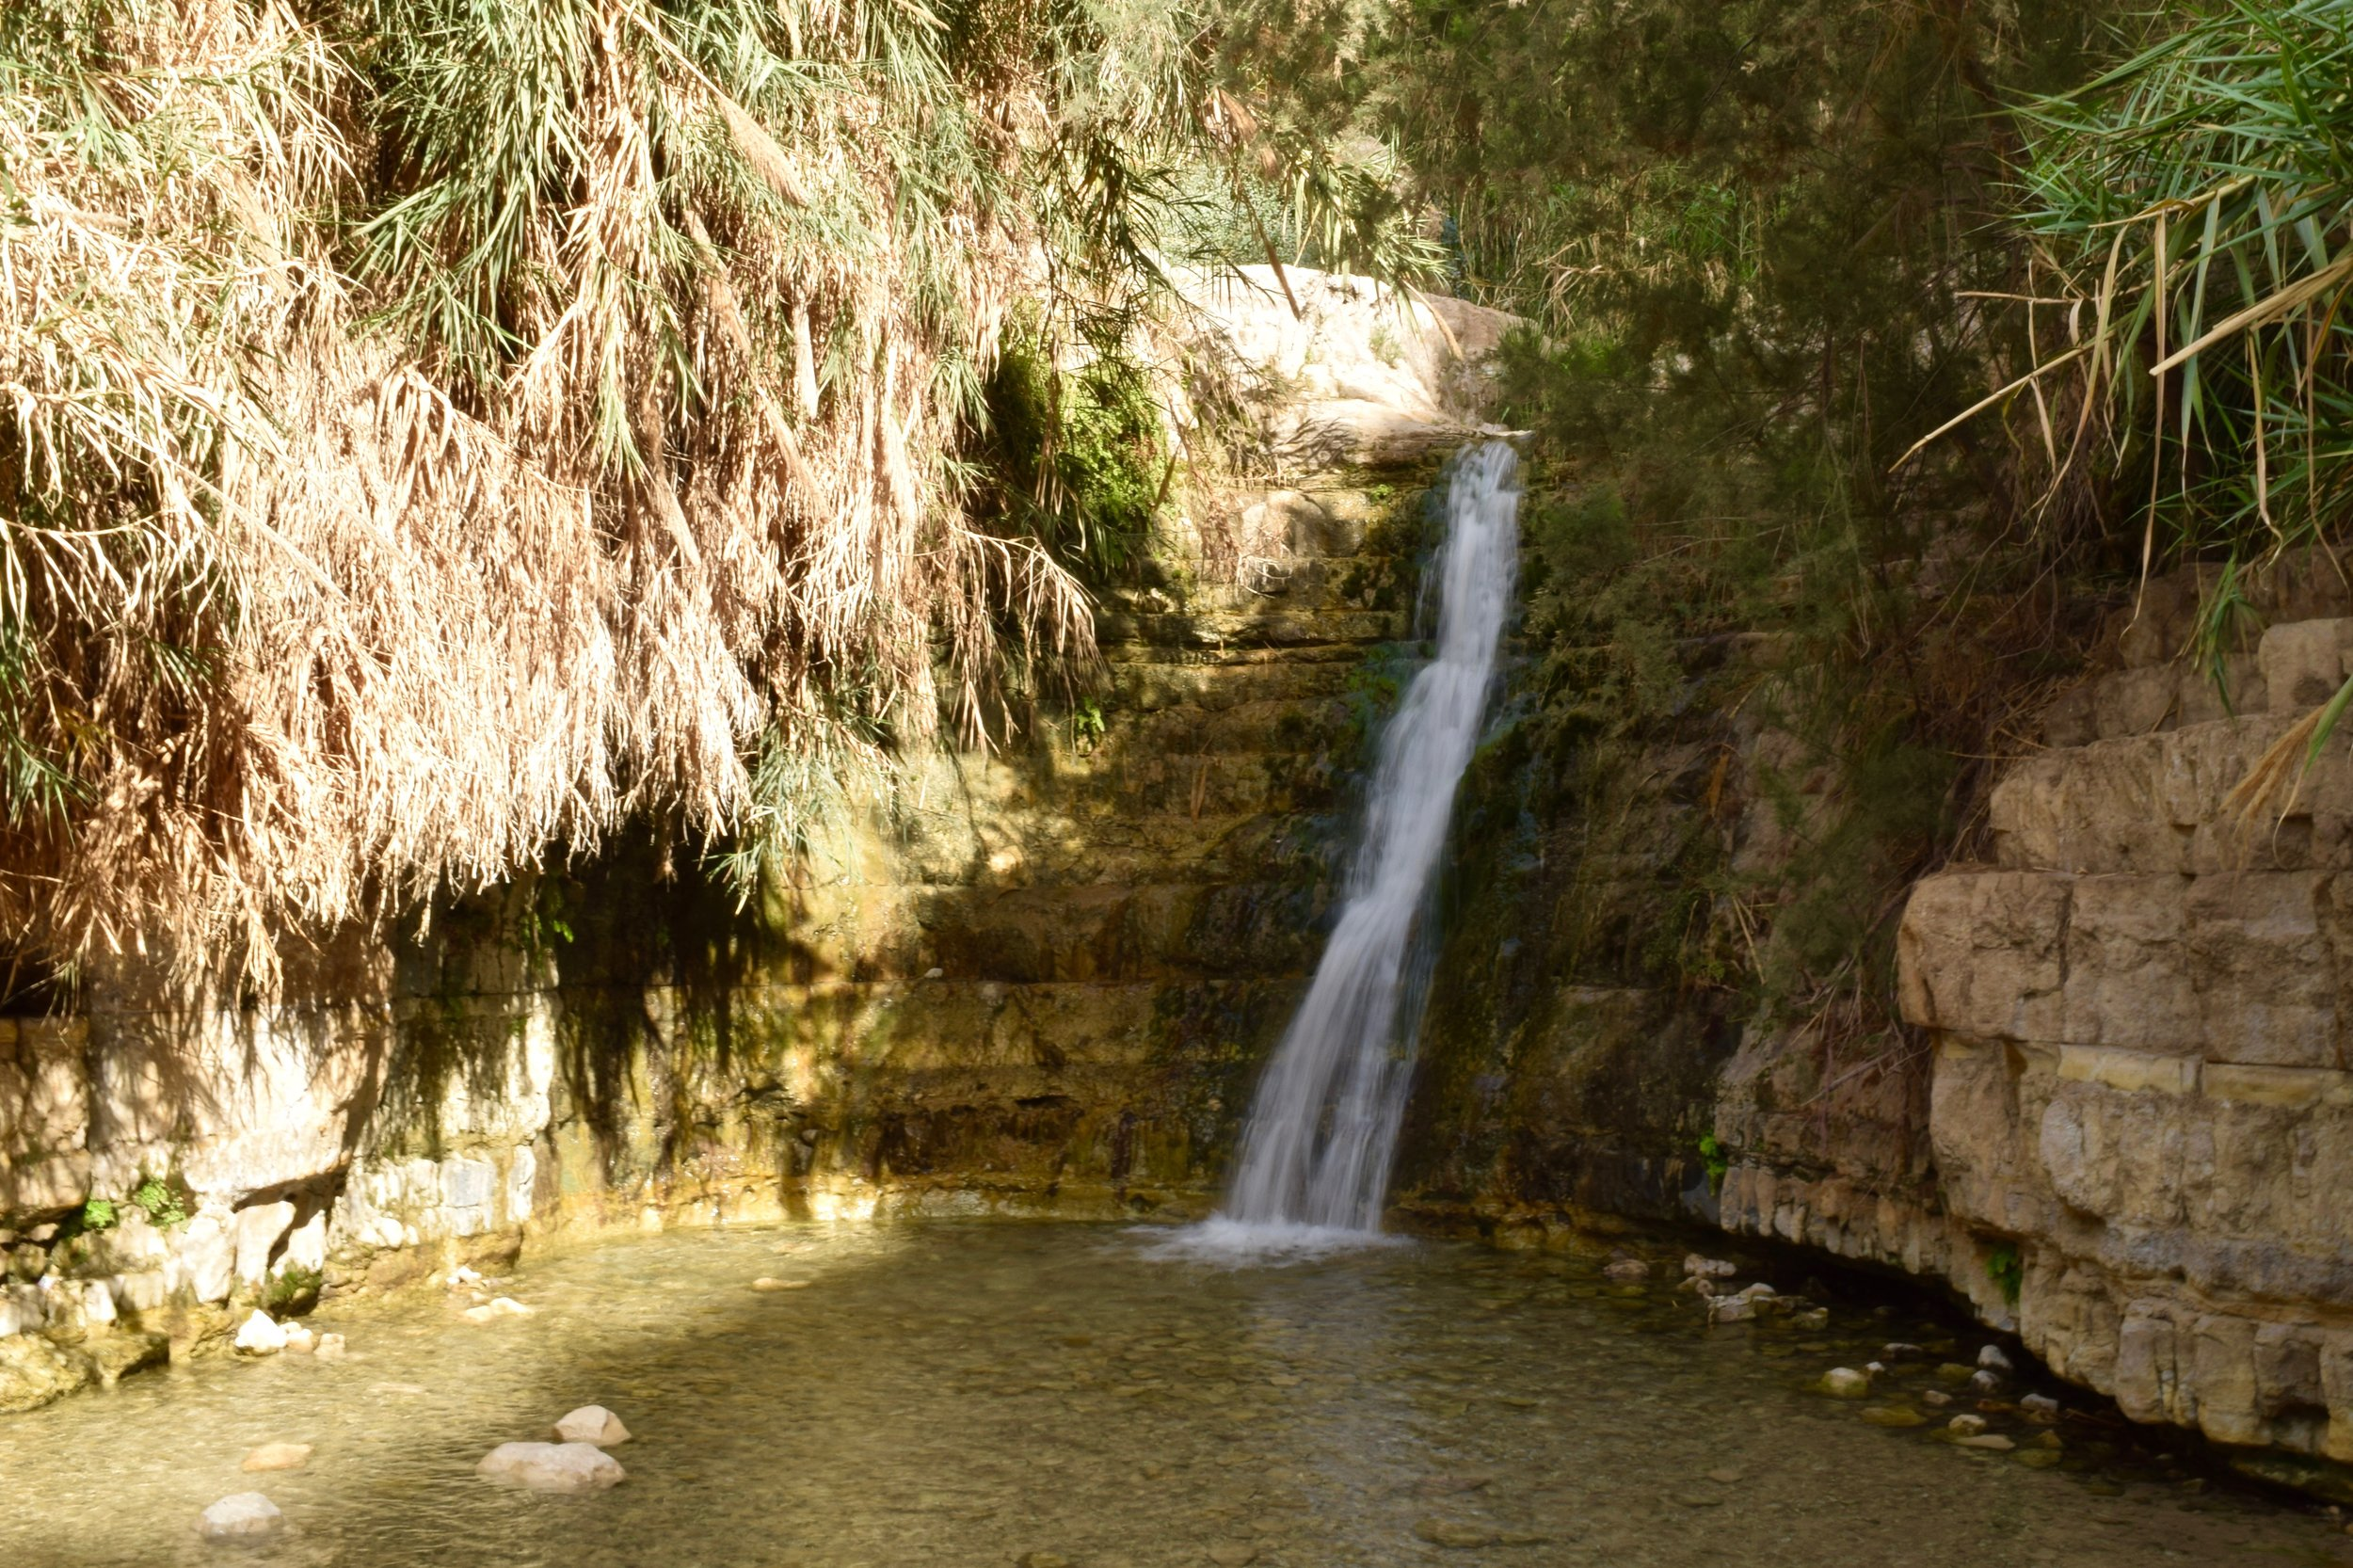 Waterfall in Ein Gedi